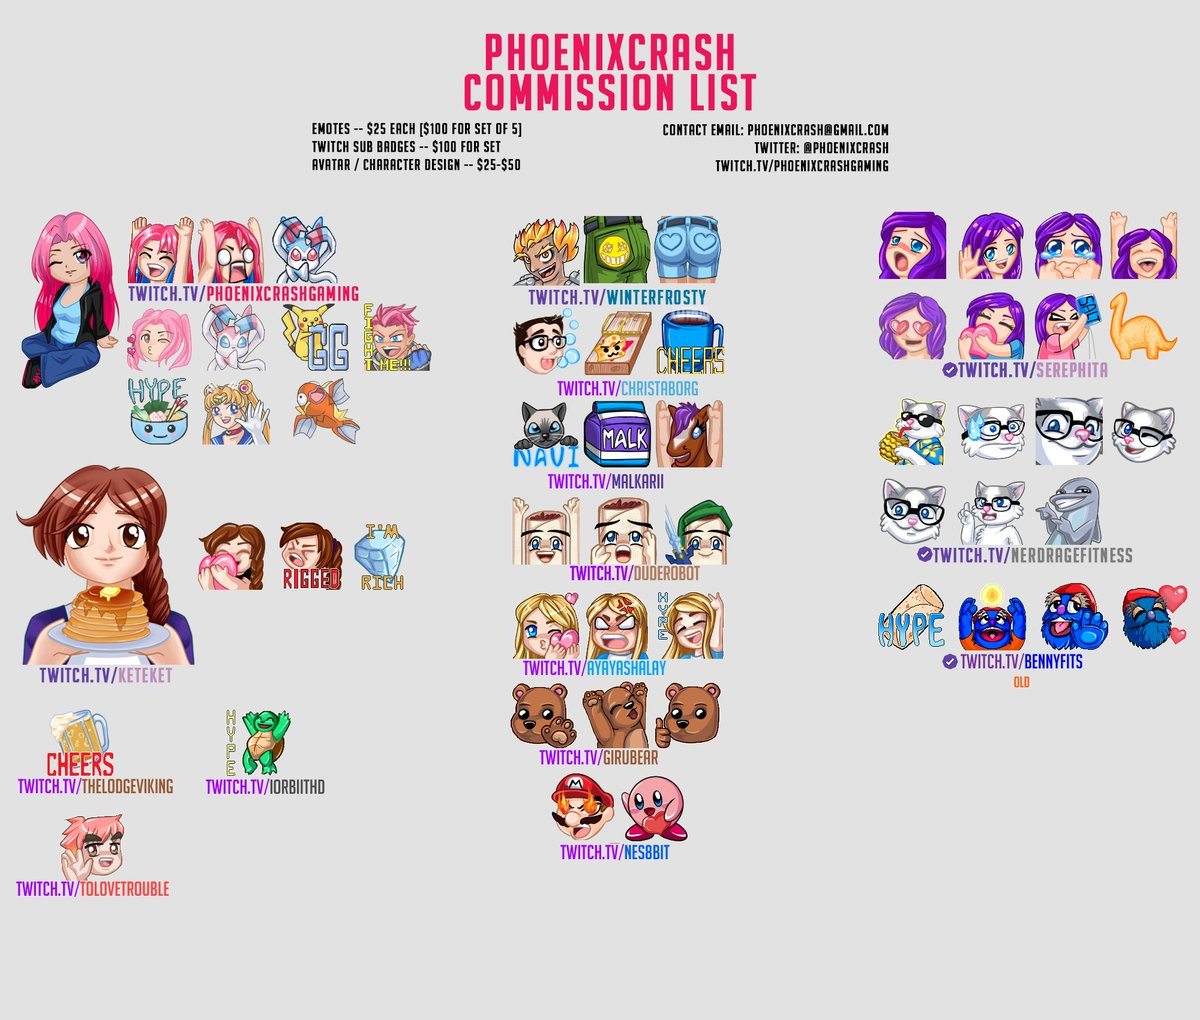 BTTV TWITCH EMOTES LIST - Bbtv Emotes